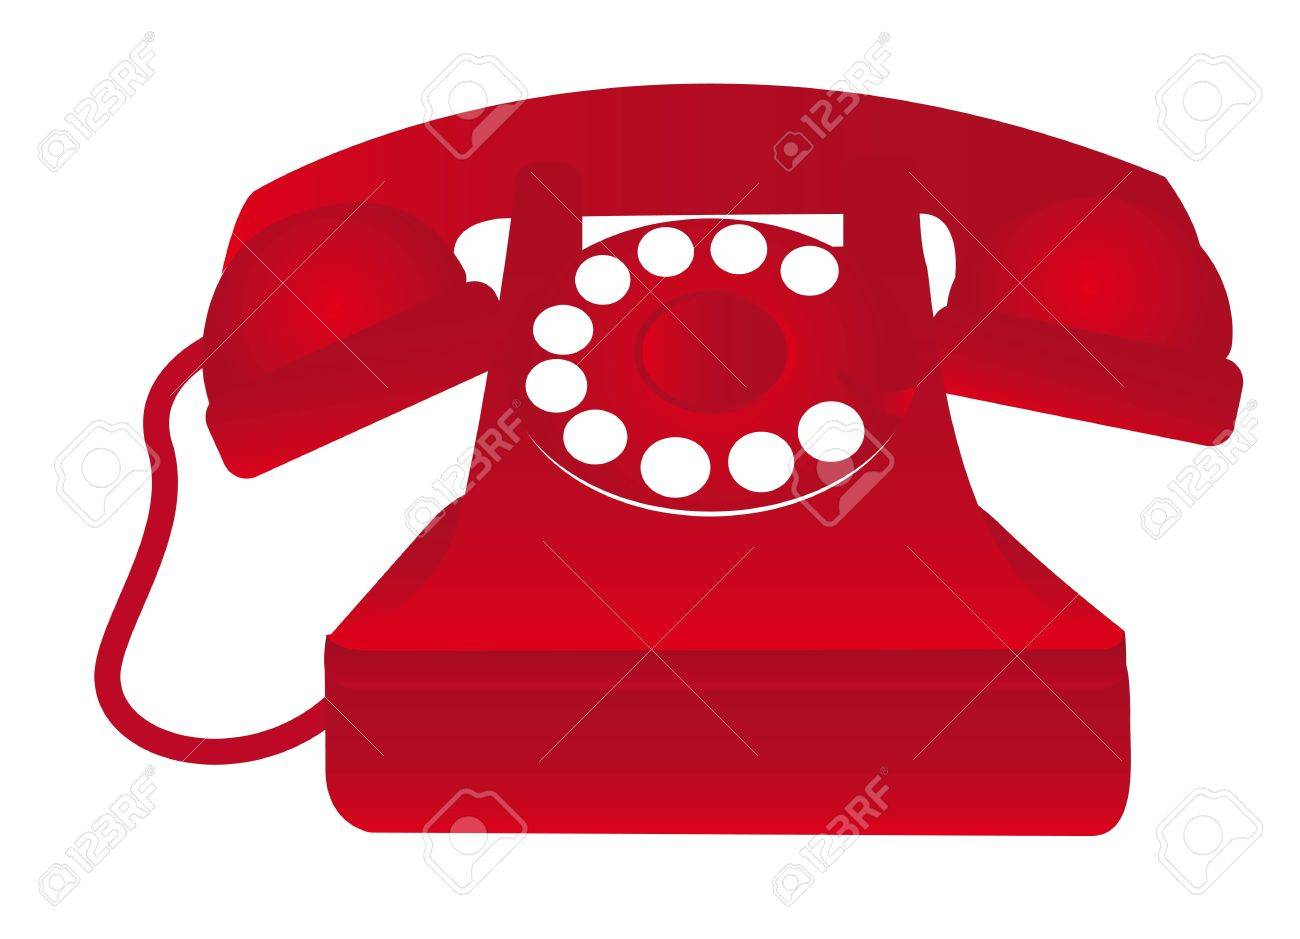 red old telephone isolated over white background. vector illustration Stock Vector - 11549286